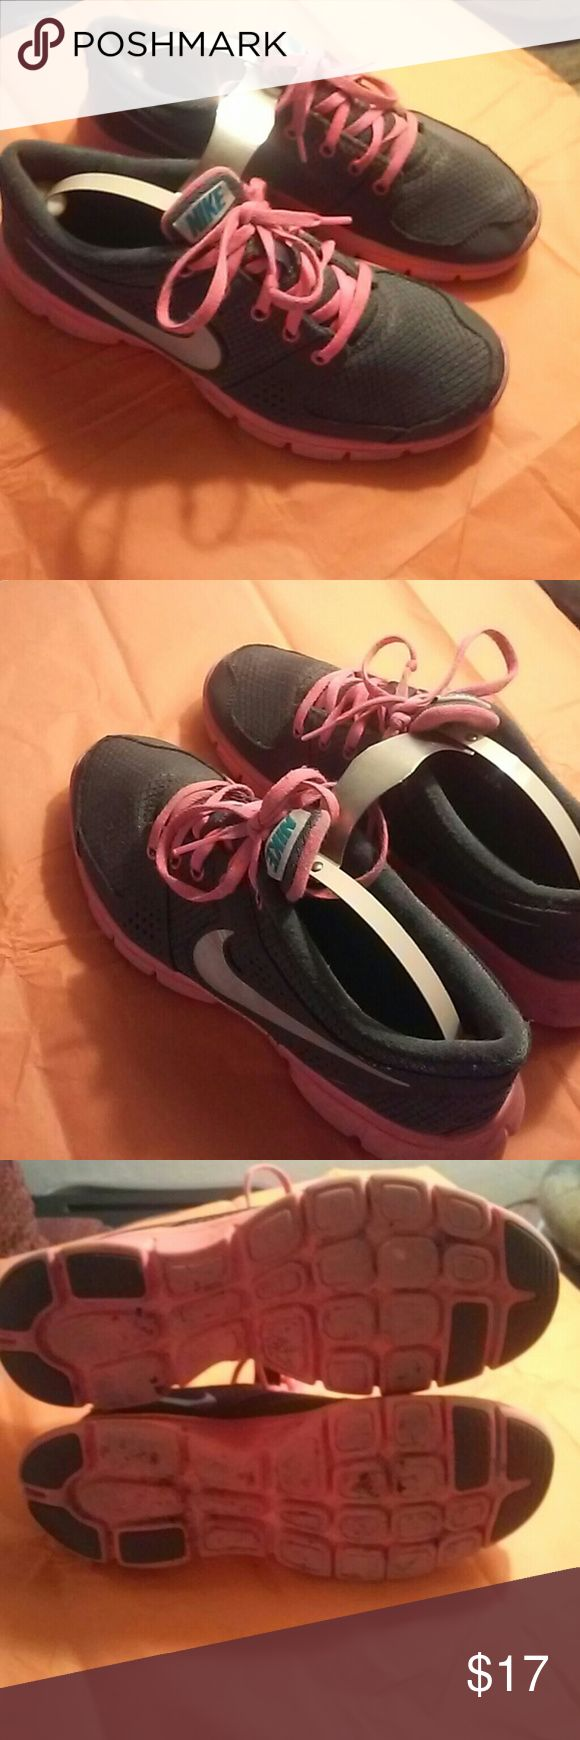 Nike Flex Grey and hot pink tennis shoes Used size 8 Nike flex. Decent condition. Pre worn tennis shoes. Grey and hot pink with hot pink leases. . no rips or tears in fabric. No discoloration. Women's Nike Flex. Extremely comfortable . light weight shoe. Good soles. Nike flex Shoes Athletic Shoes